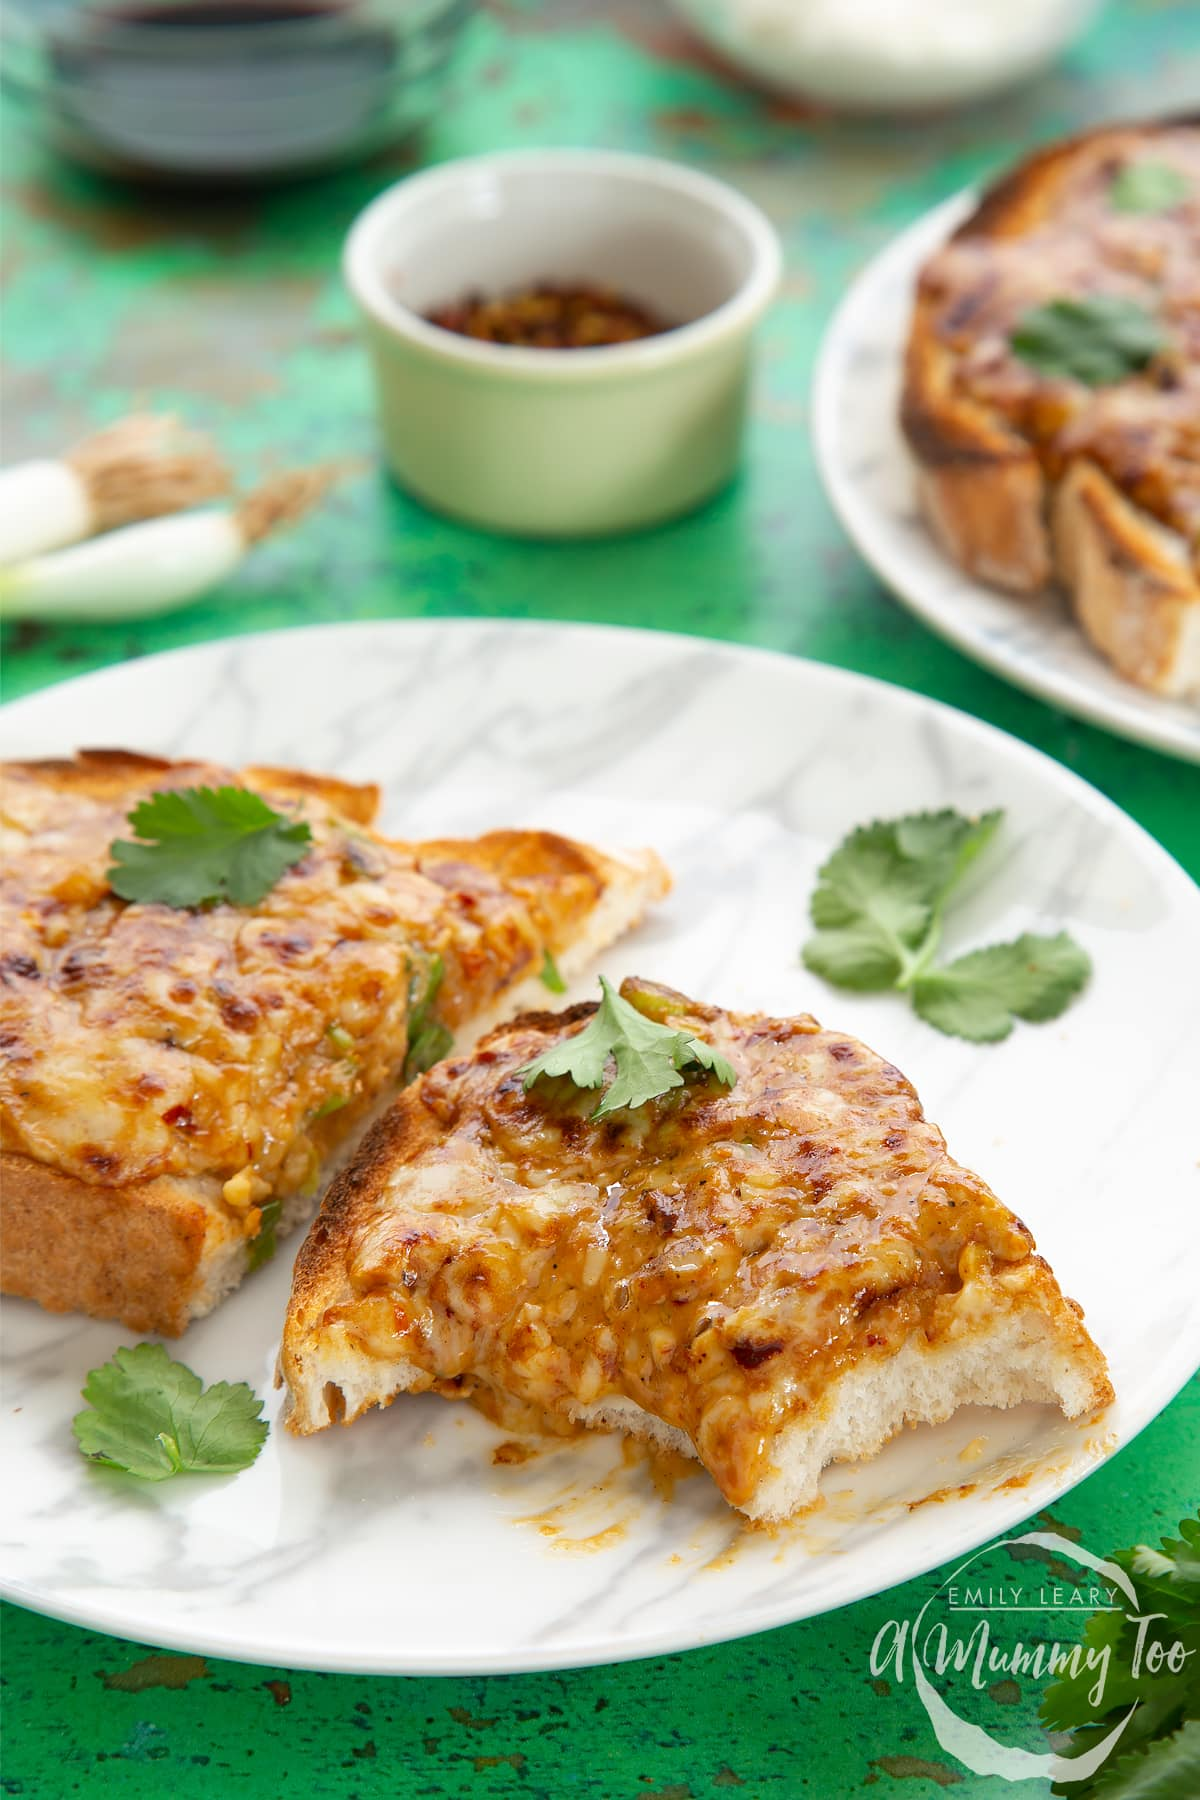 Two pieces of chilli cheese toast  on a white marbled plate, scattered with coriander. The piece in the foreground has several bites taken out of it.